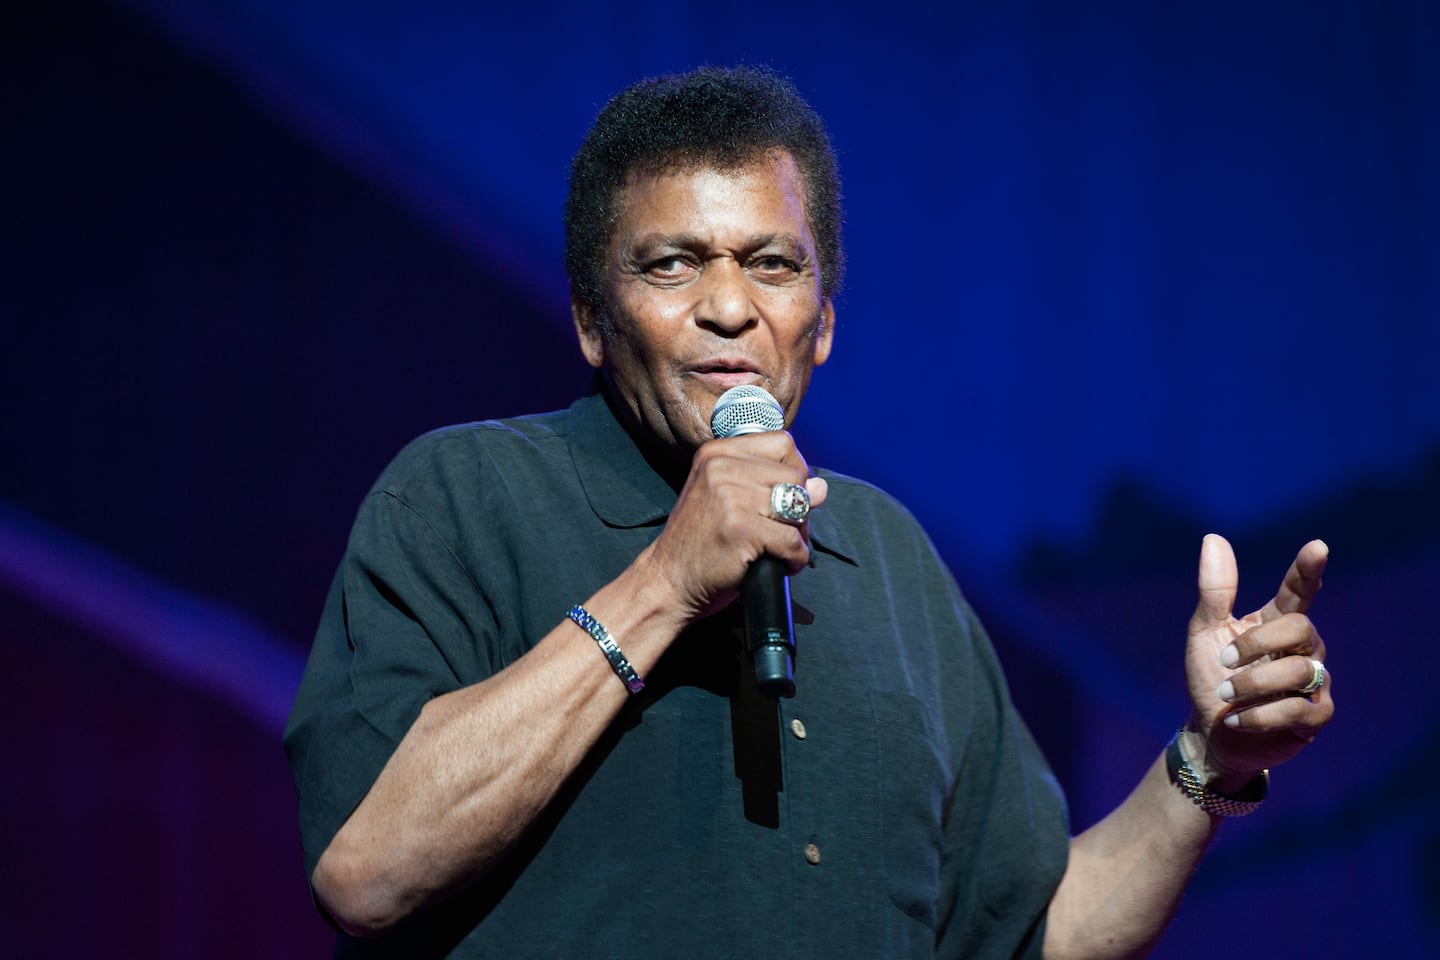 Charley Pride, first major Black star in country music, dies at 86 of covid-19